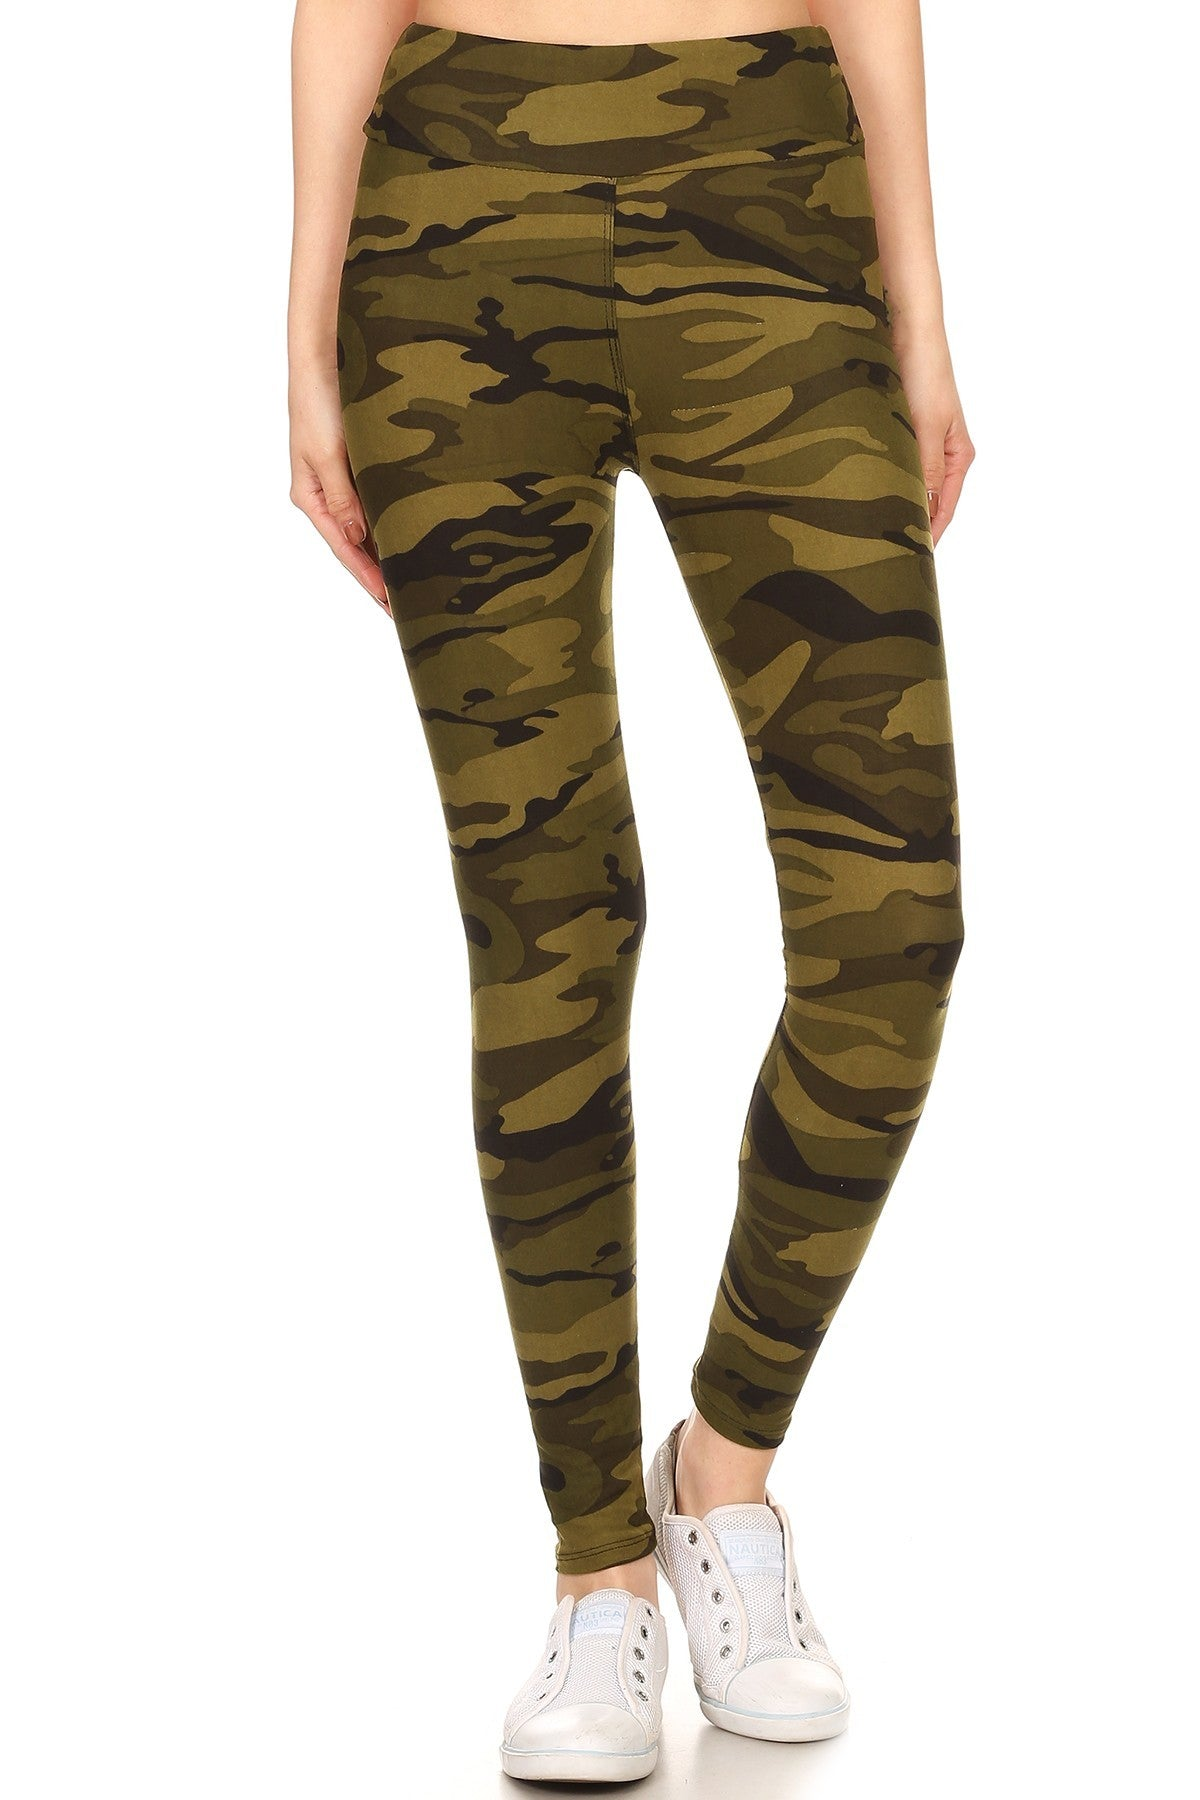 Camo Army Print Pattern Leggings w/ Banded Waist